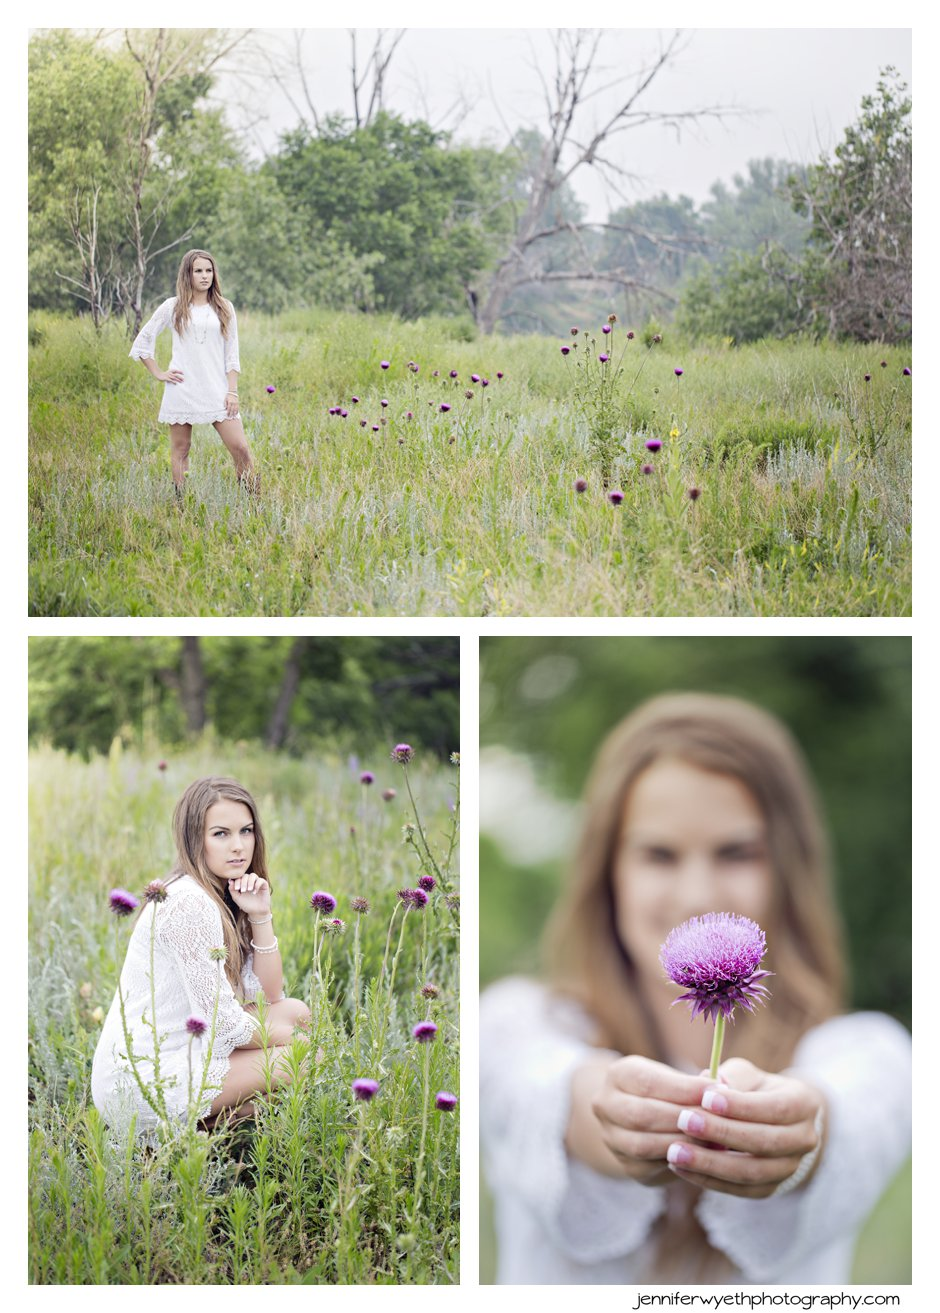 purple wild flowers accent a picture of girl in field